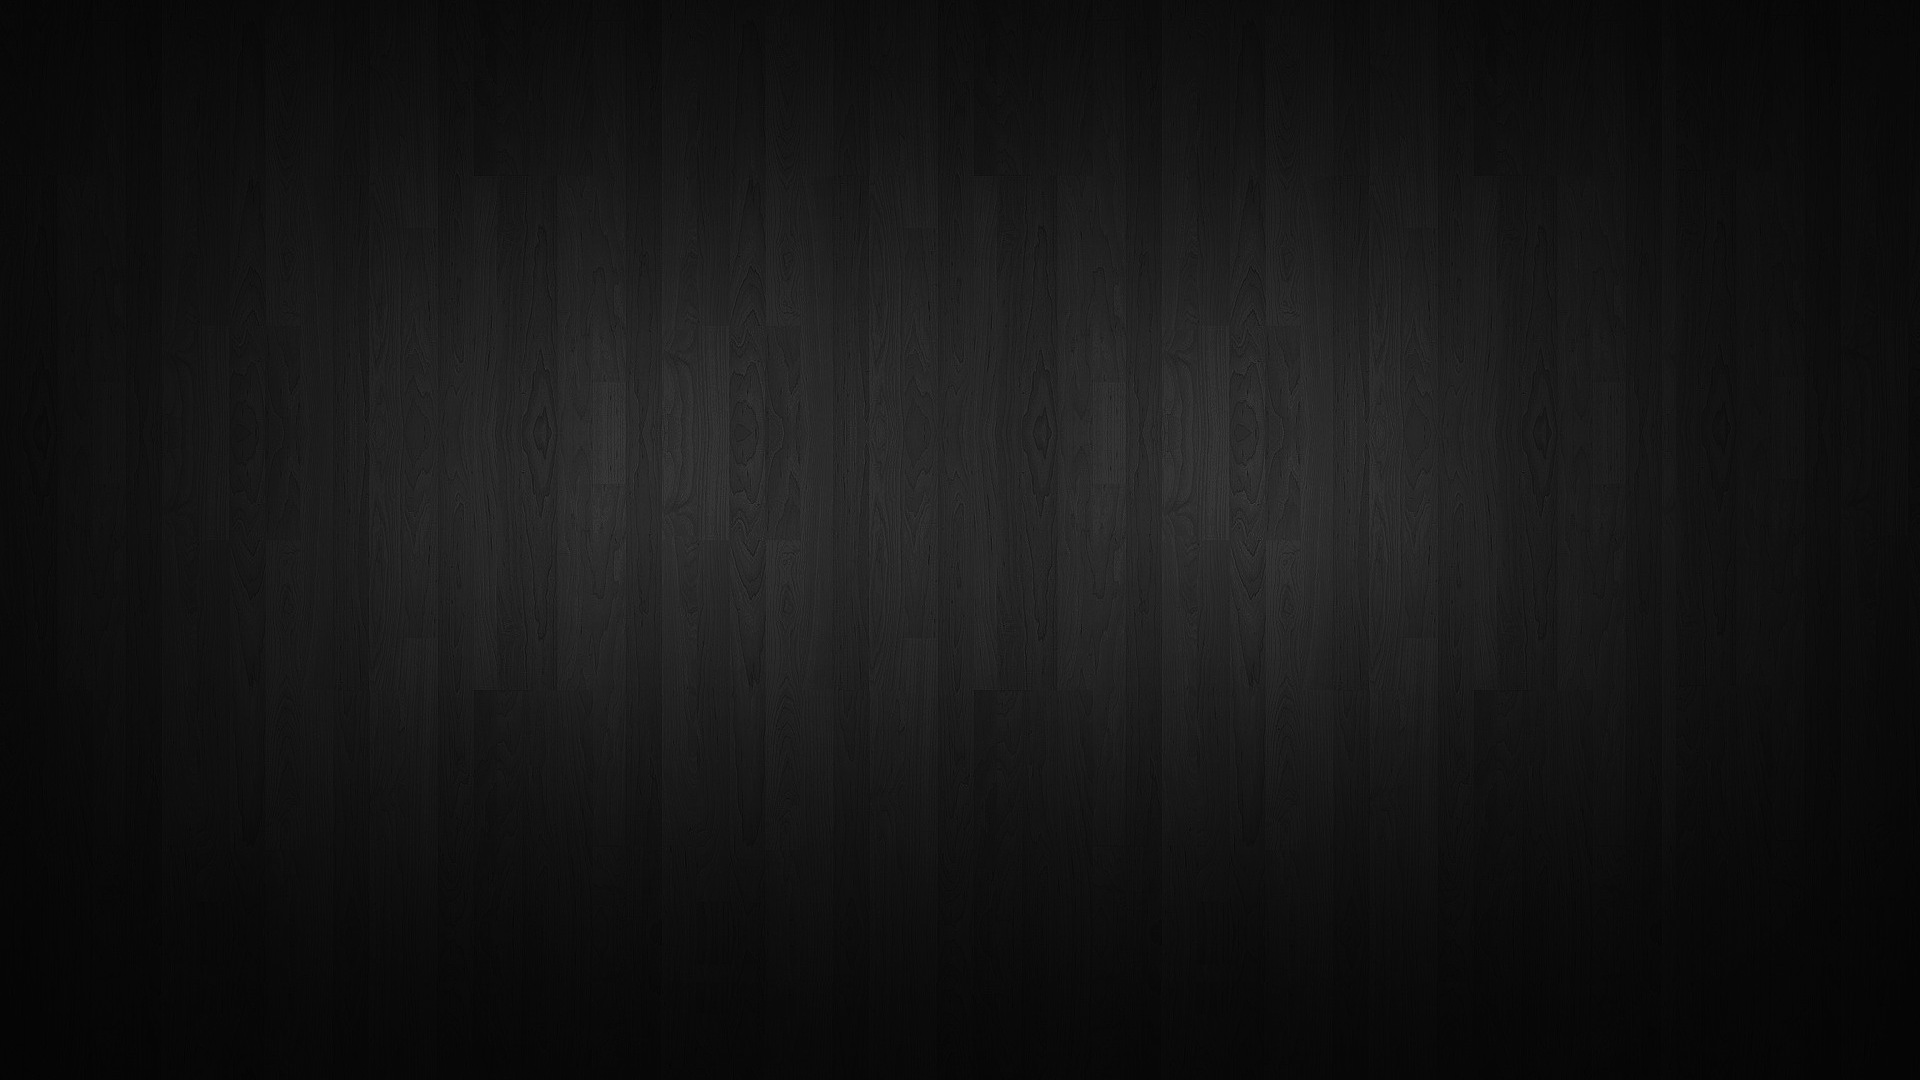 dark-wood-fullsize